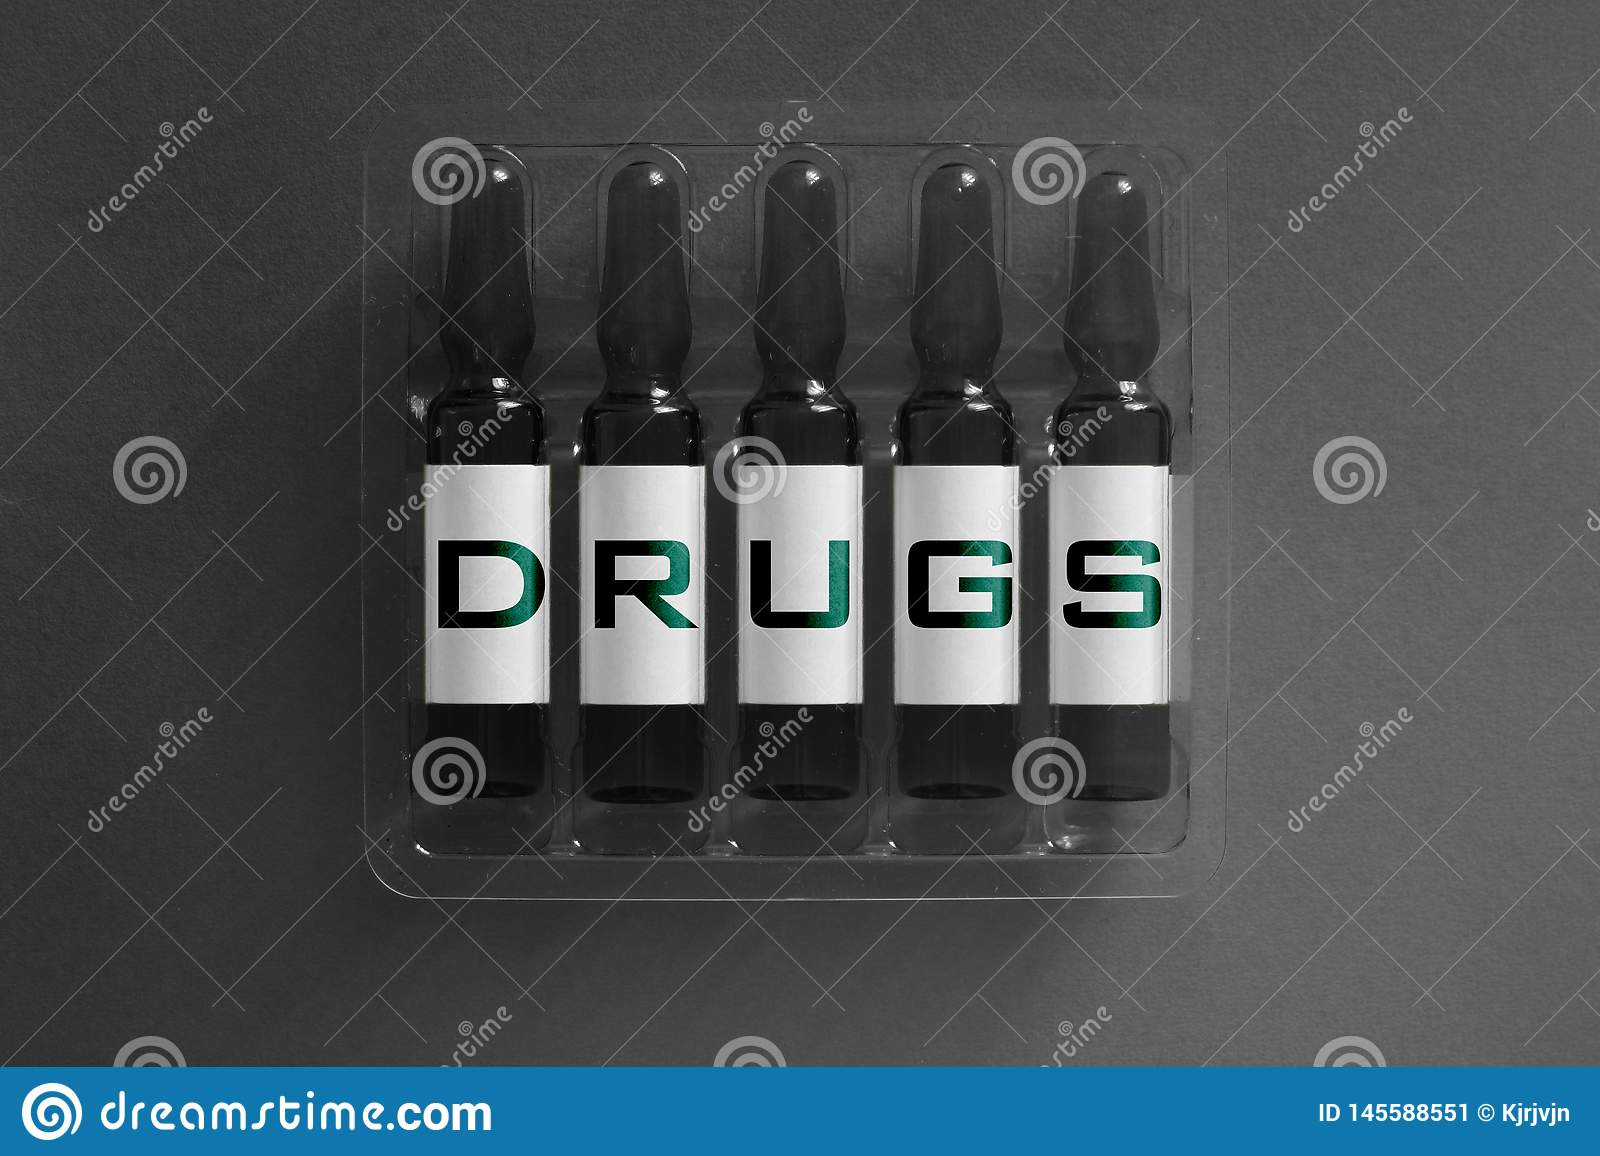 Narcotics or drugs addiction concept image